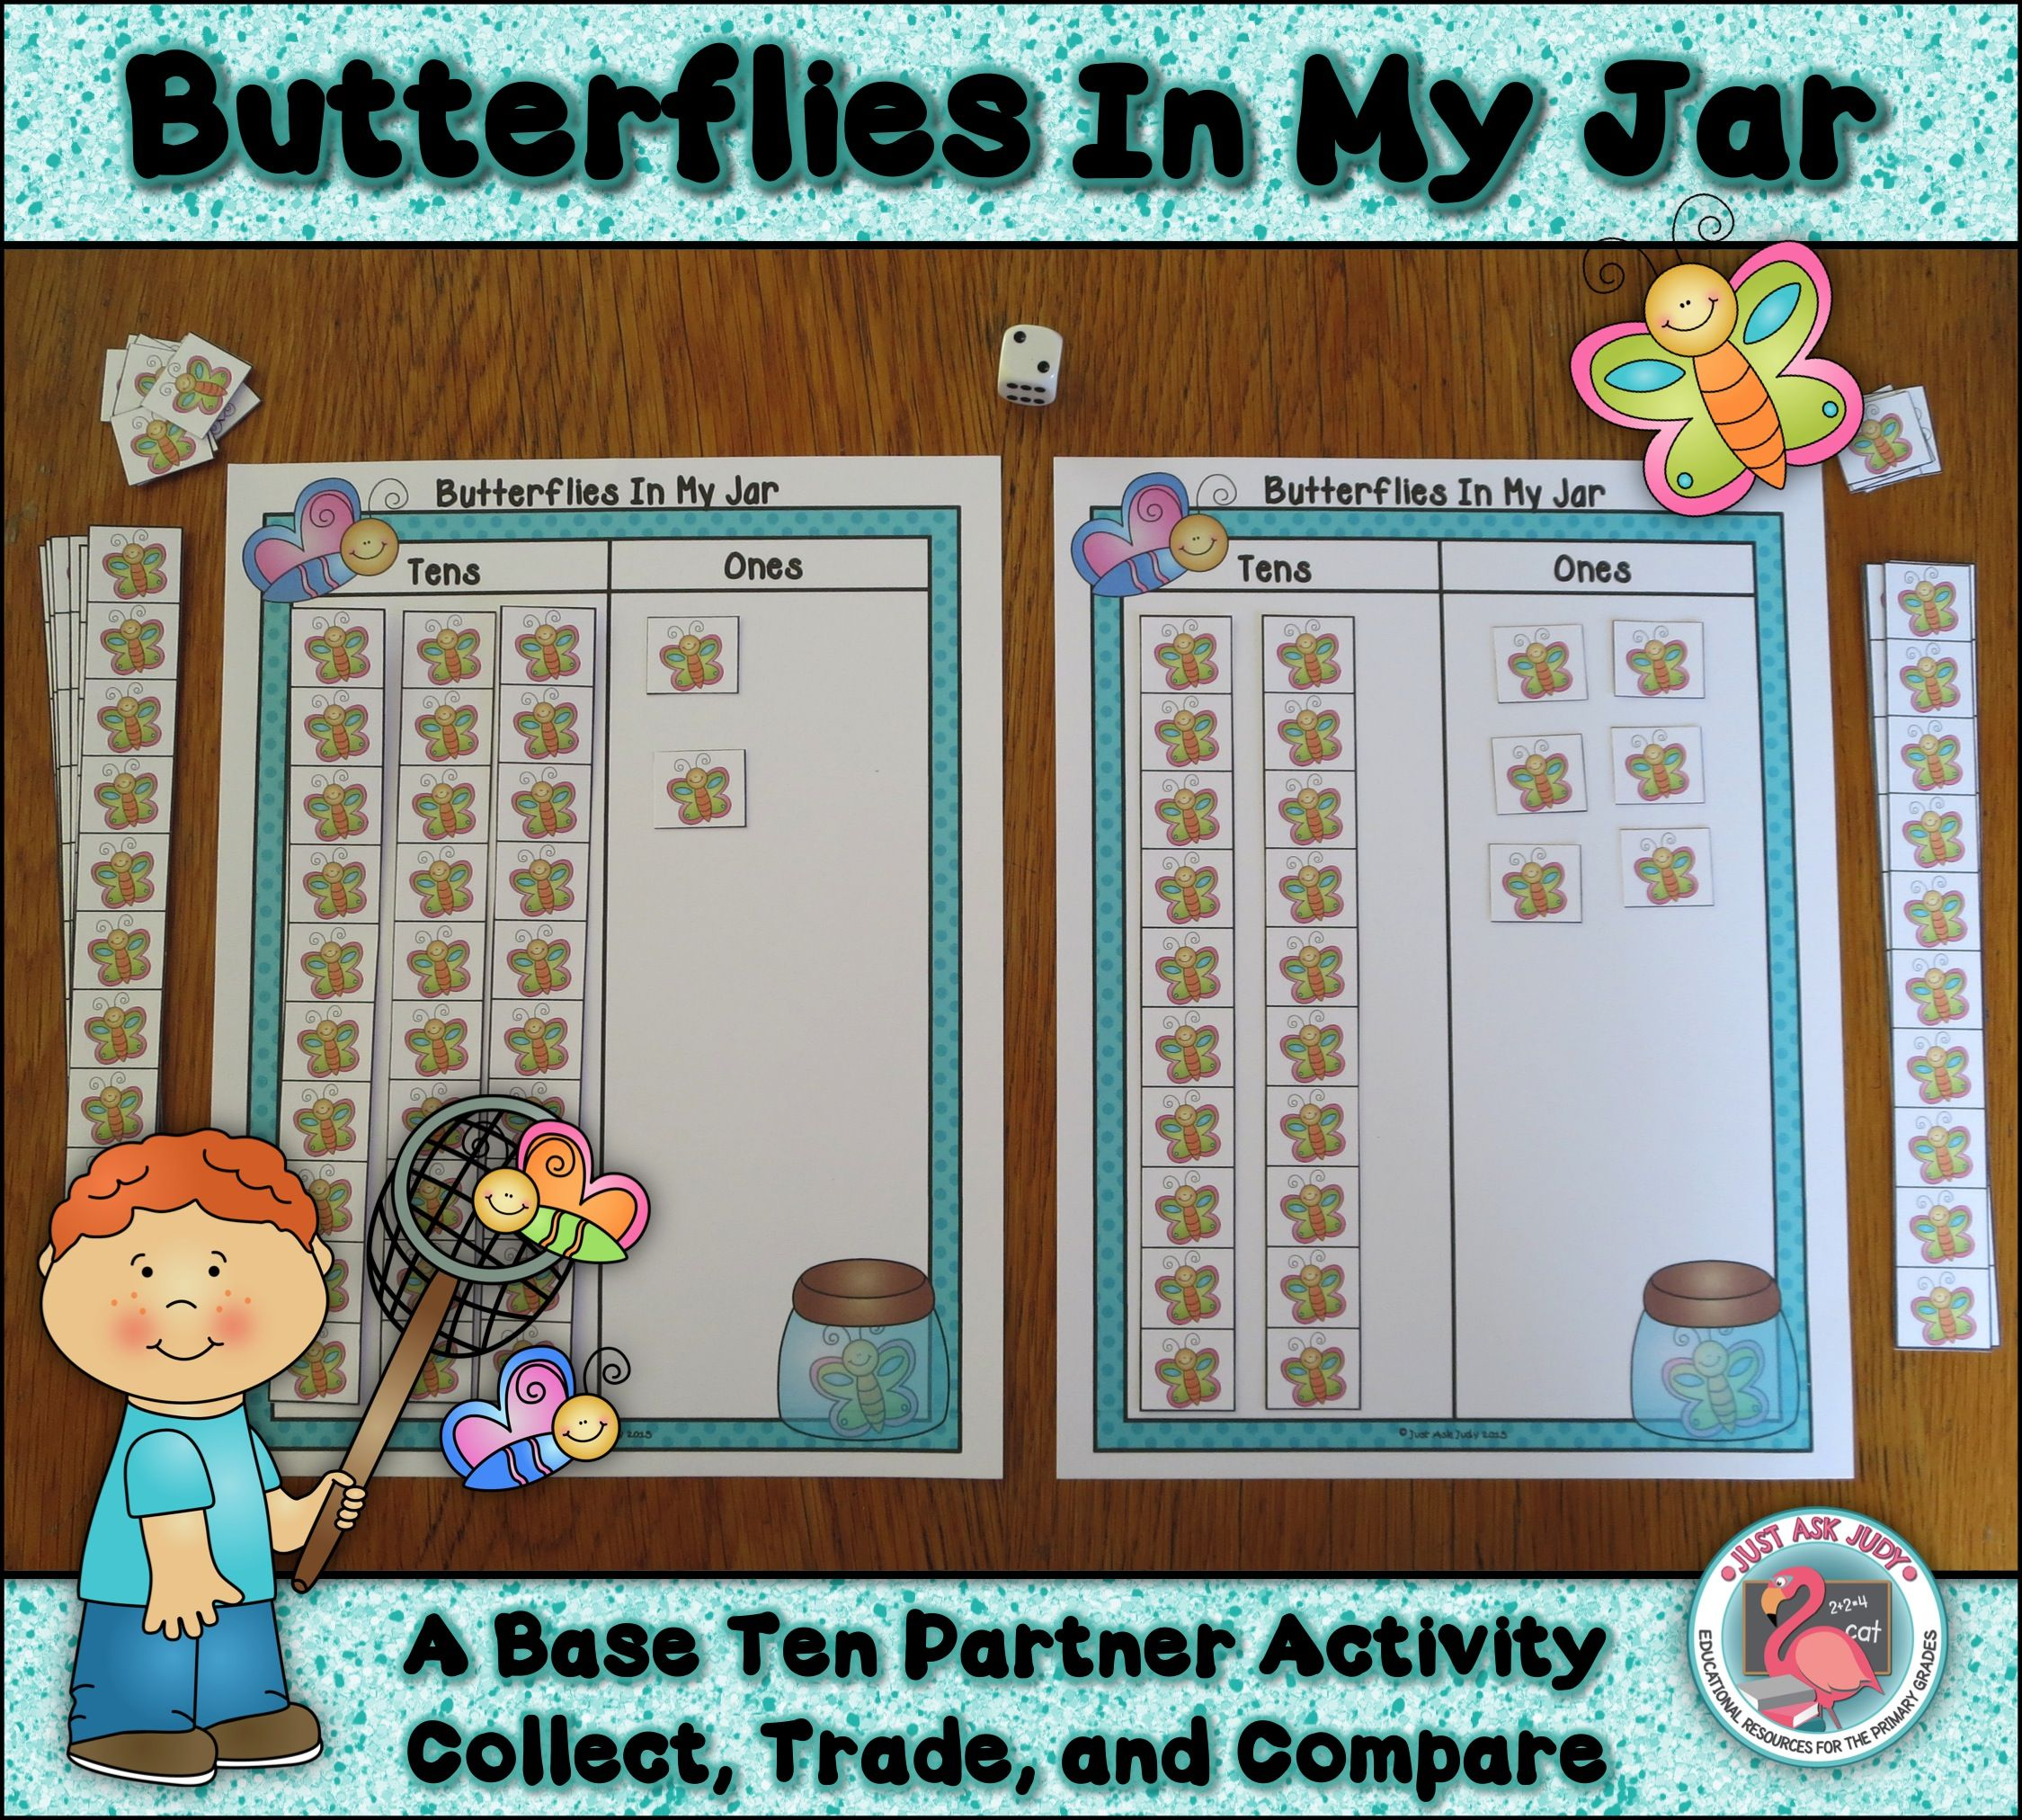 This butterfly themed partner activity reinforces understanding of base ten, trading ten ones for one ten, and comparing two digit numbers. It also includes additional recording sheets with expanded form, rounding to the nearest ten, and counting by tens off a decade number. $ Grades 1-2